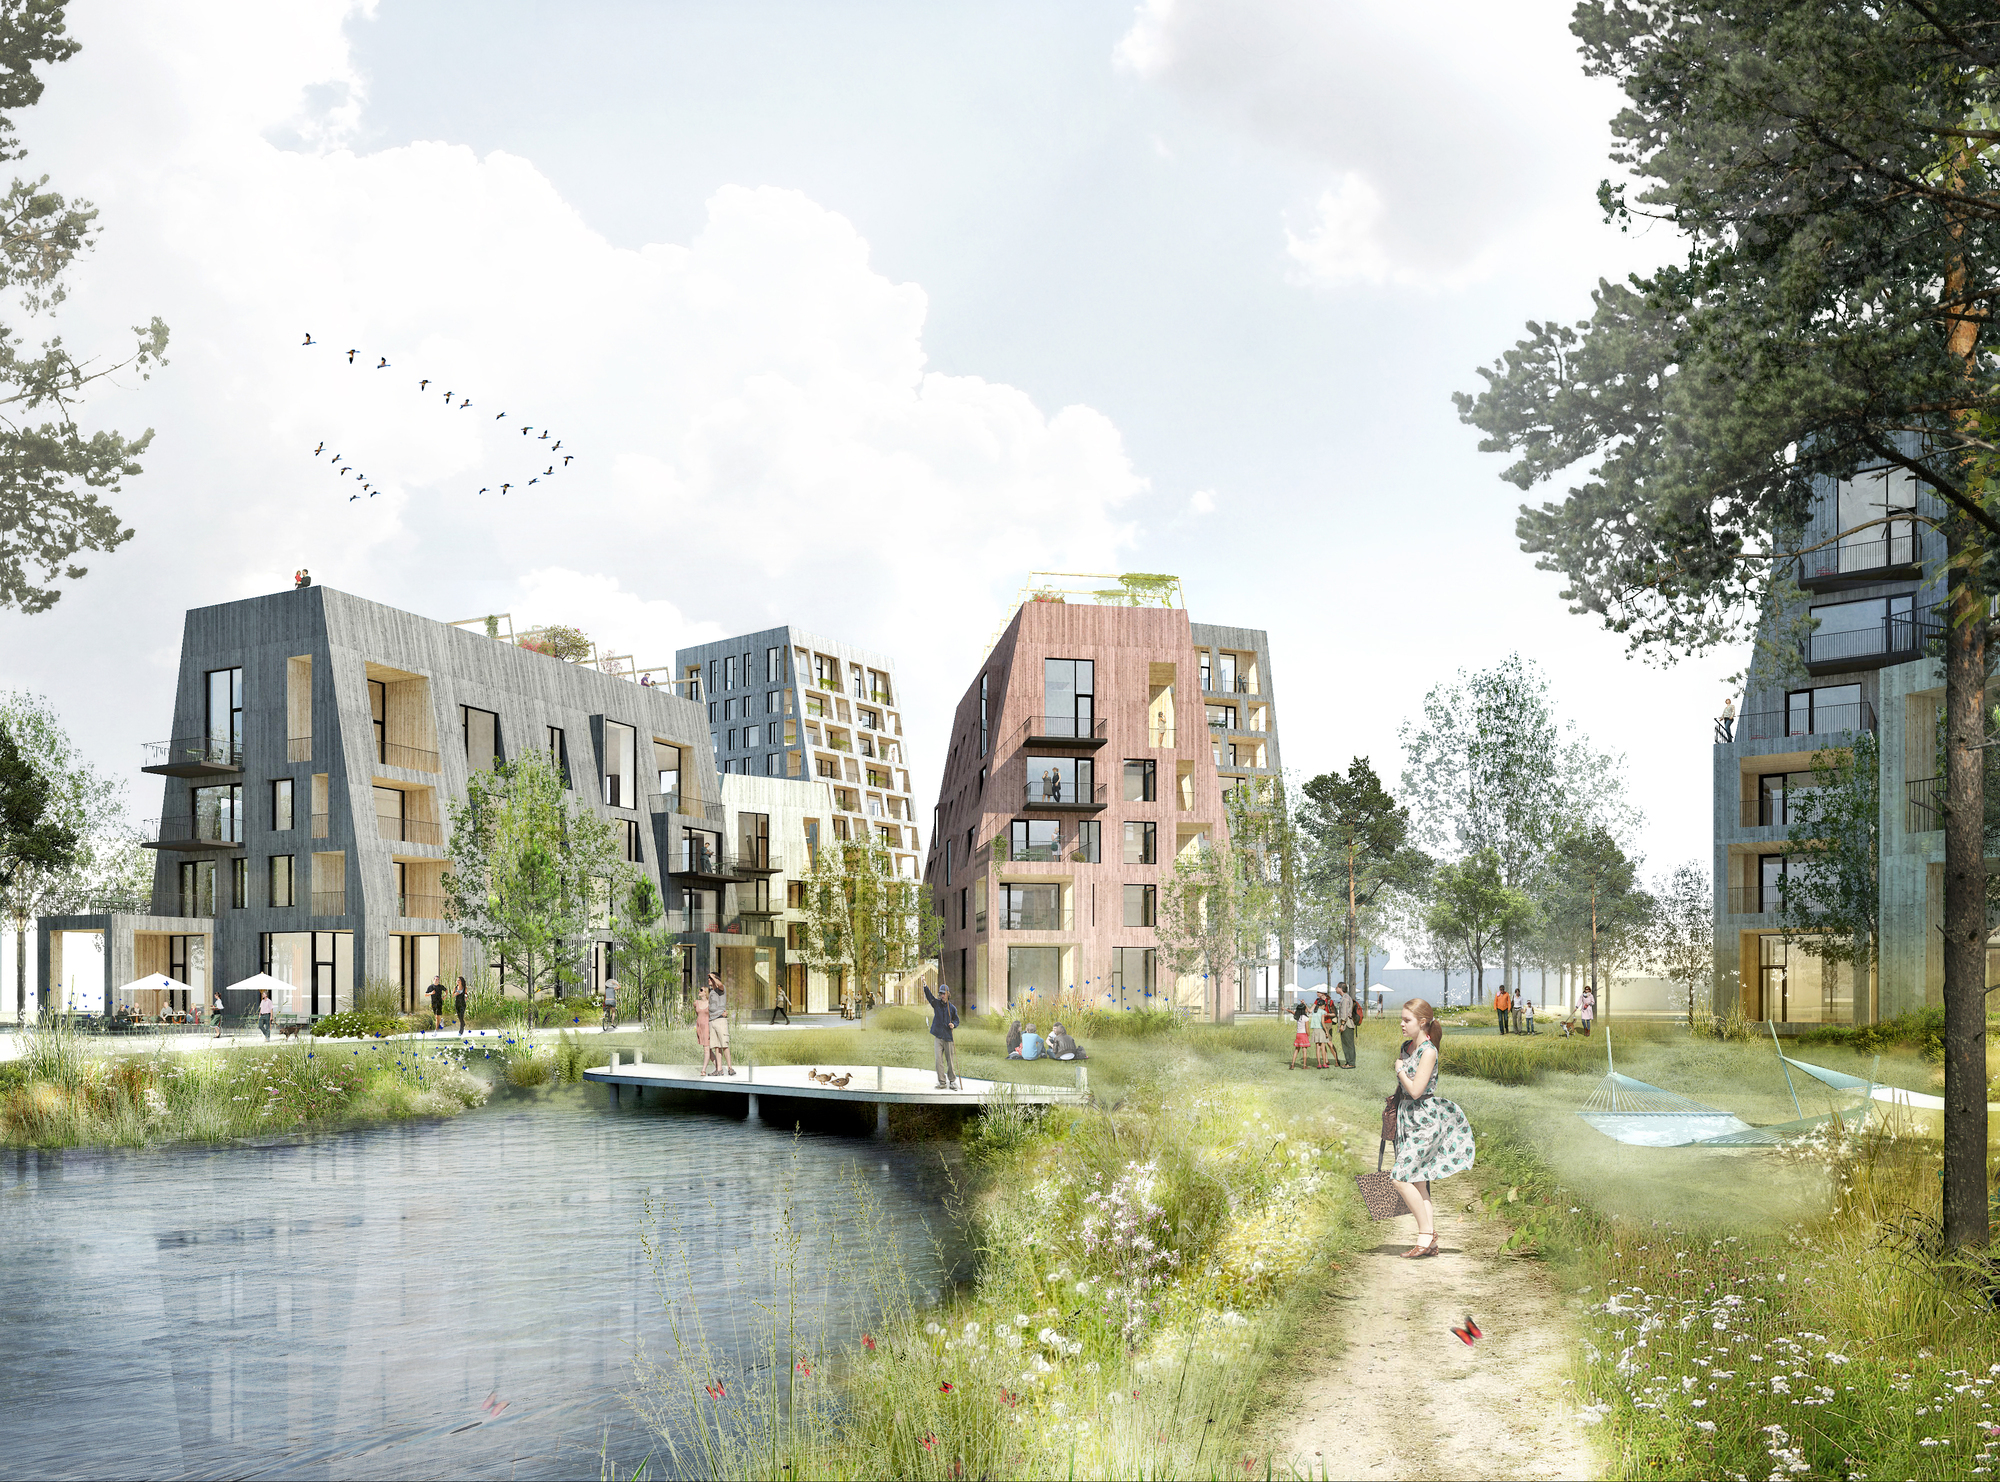 C.F. Møller's Proposal for the Örebro Timber Town Blurs the Line Between City and Nature